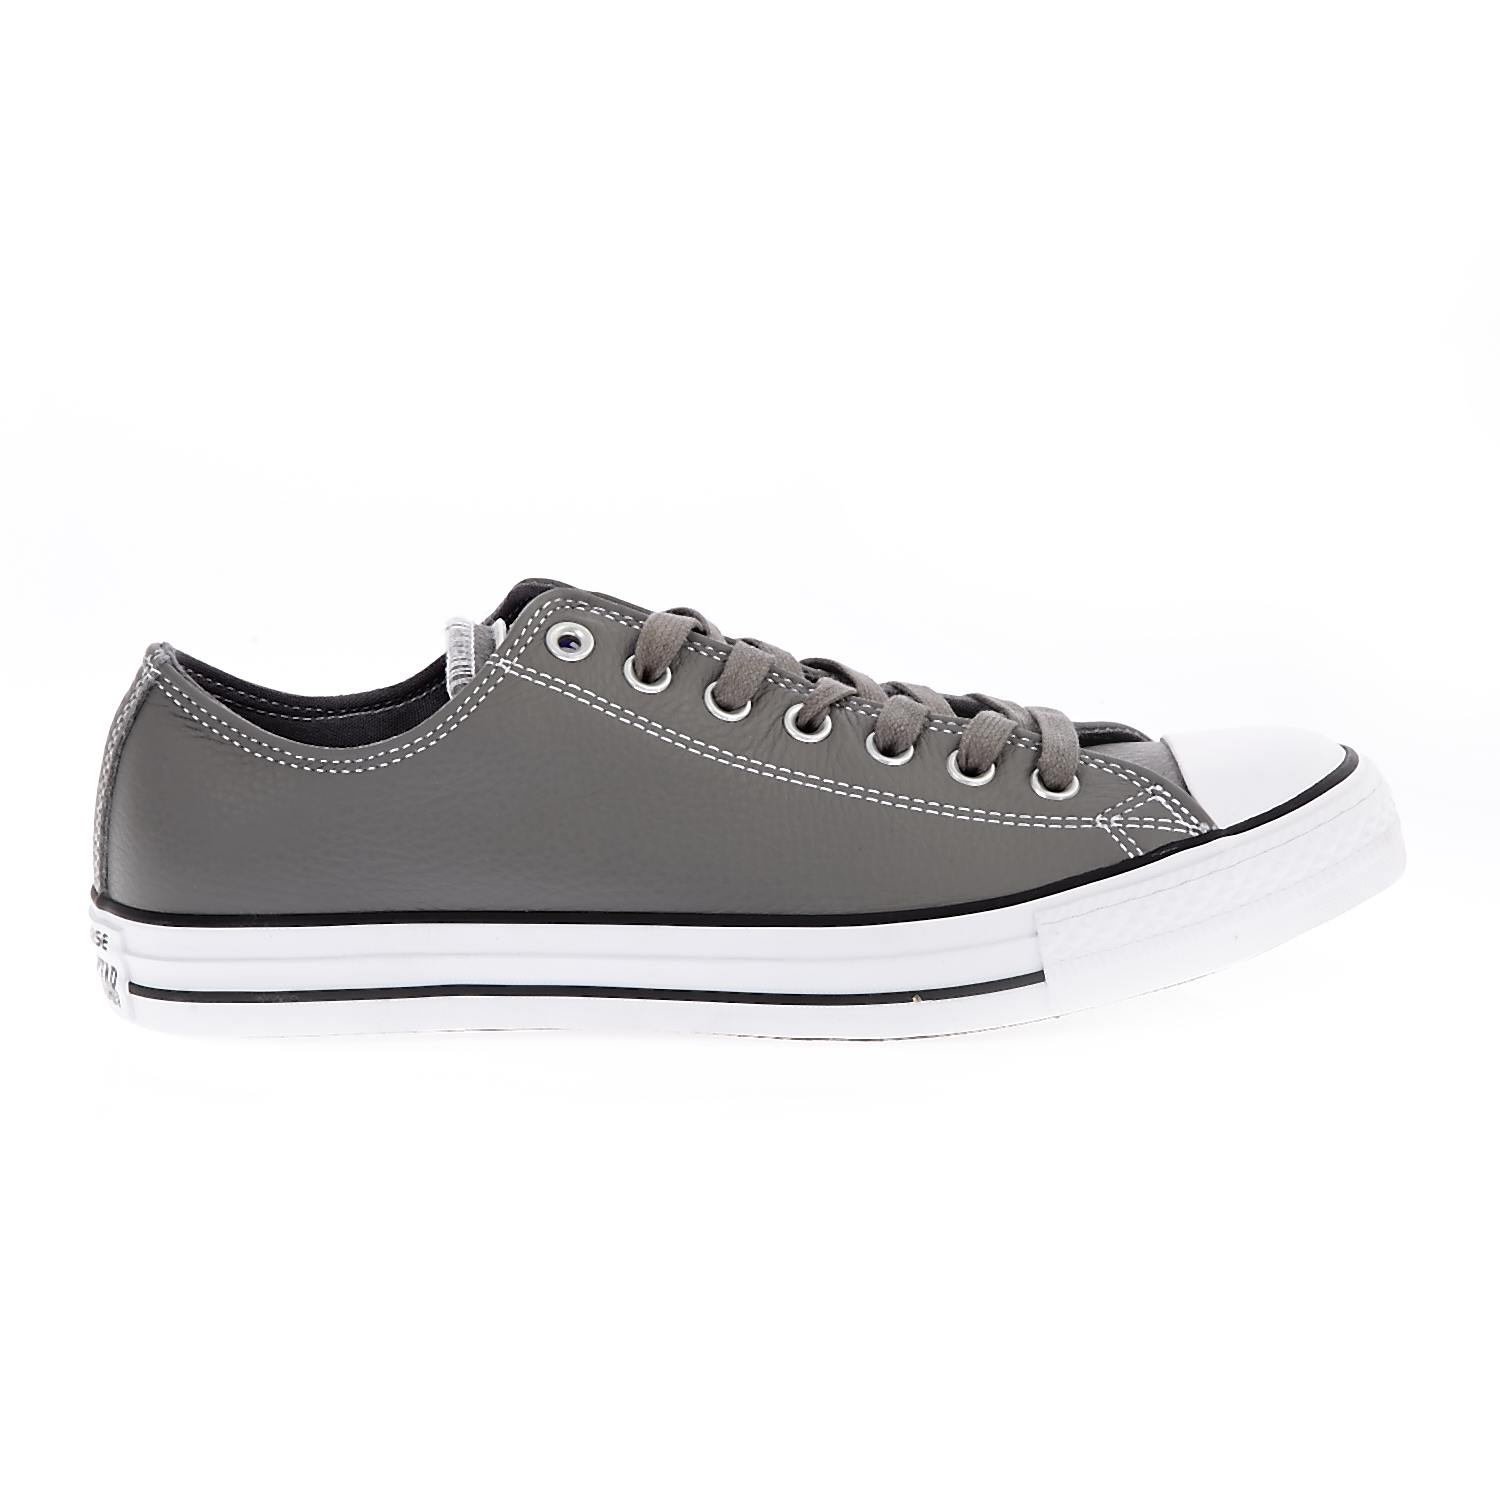 CONVERSE - Unisex παπούτσια Chuck Taylor All Star Ox γκρι - Sneakers ... cc4f51d9ec7